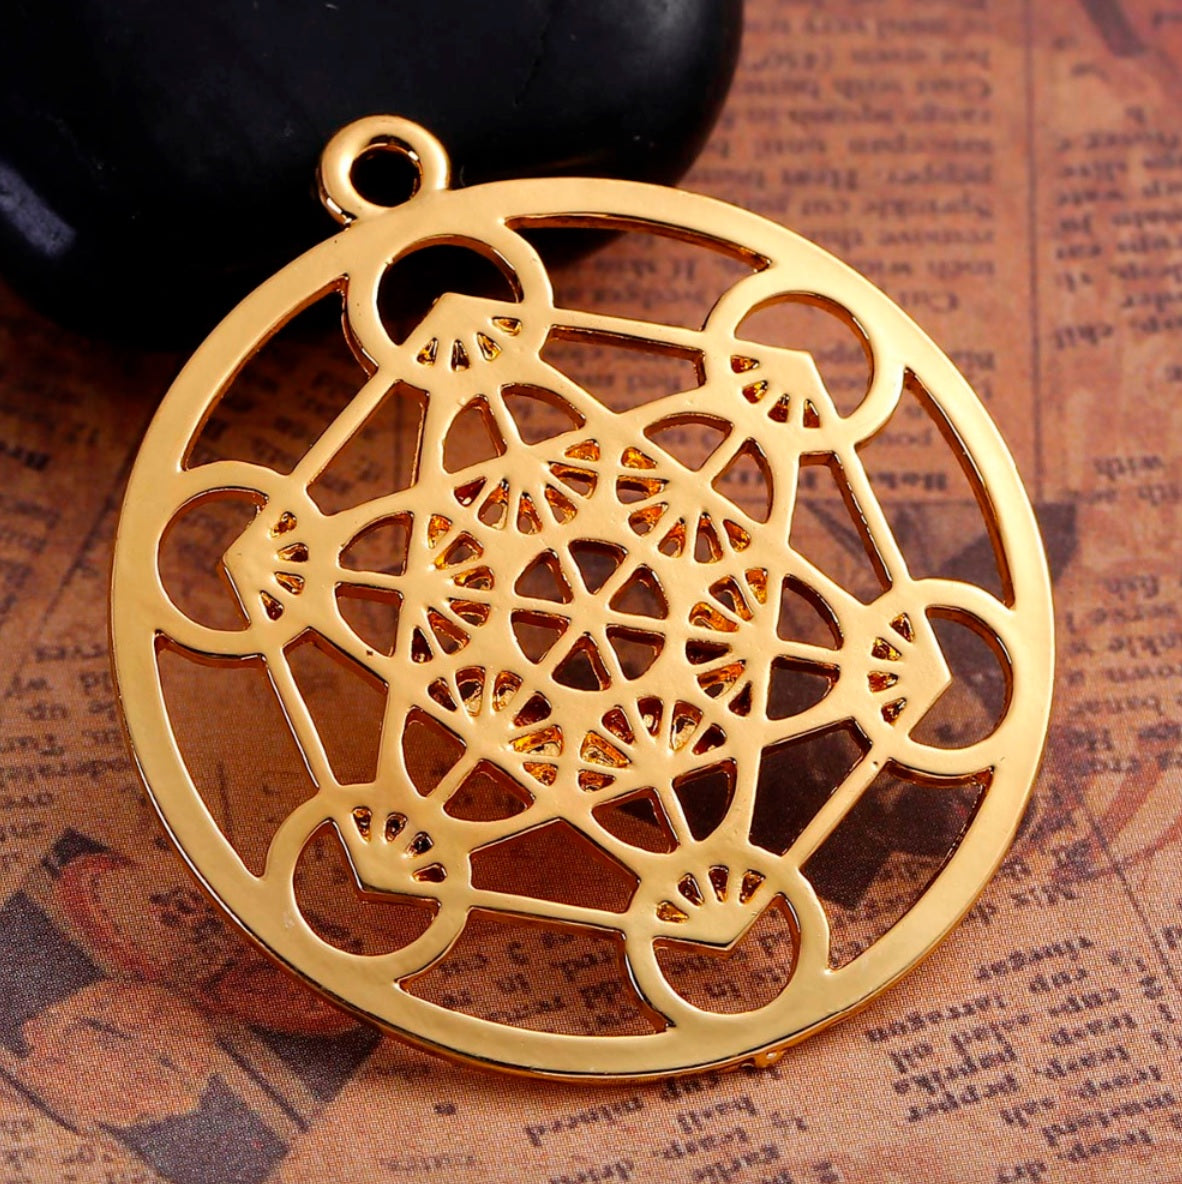 Archangel metatrons cube sacred geometry 5d ascension merkaba gold archangel metatrons cube sacred geometry 5d ascension merkaba gold colored pendant aloadofball Image collections